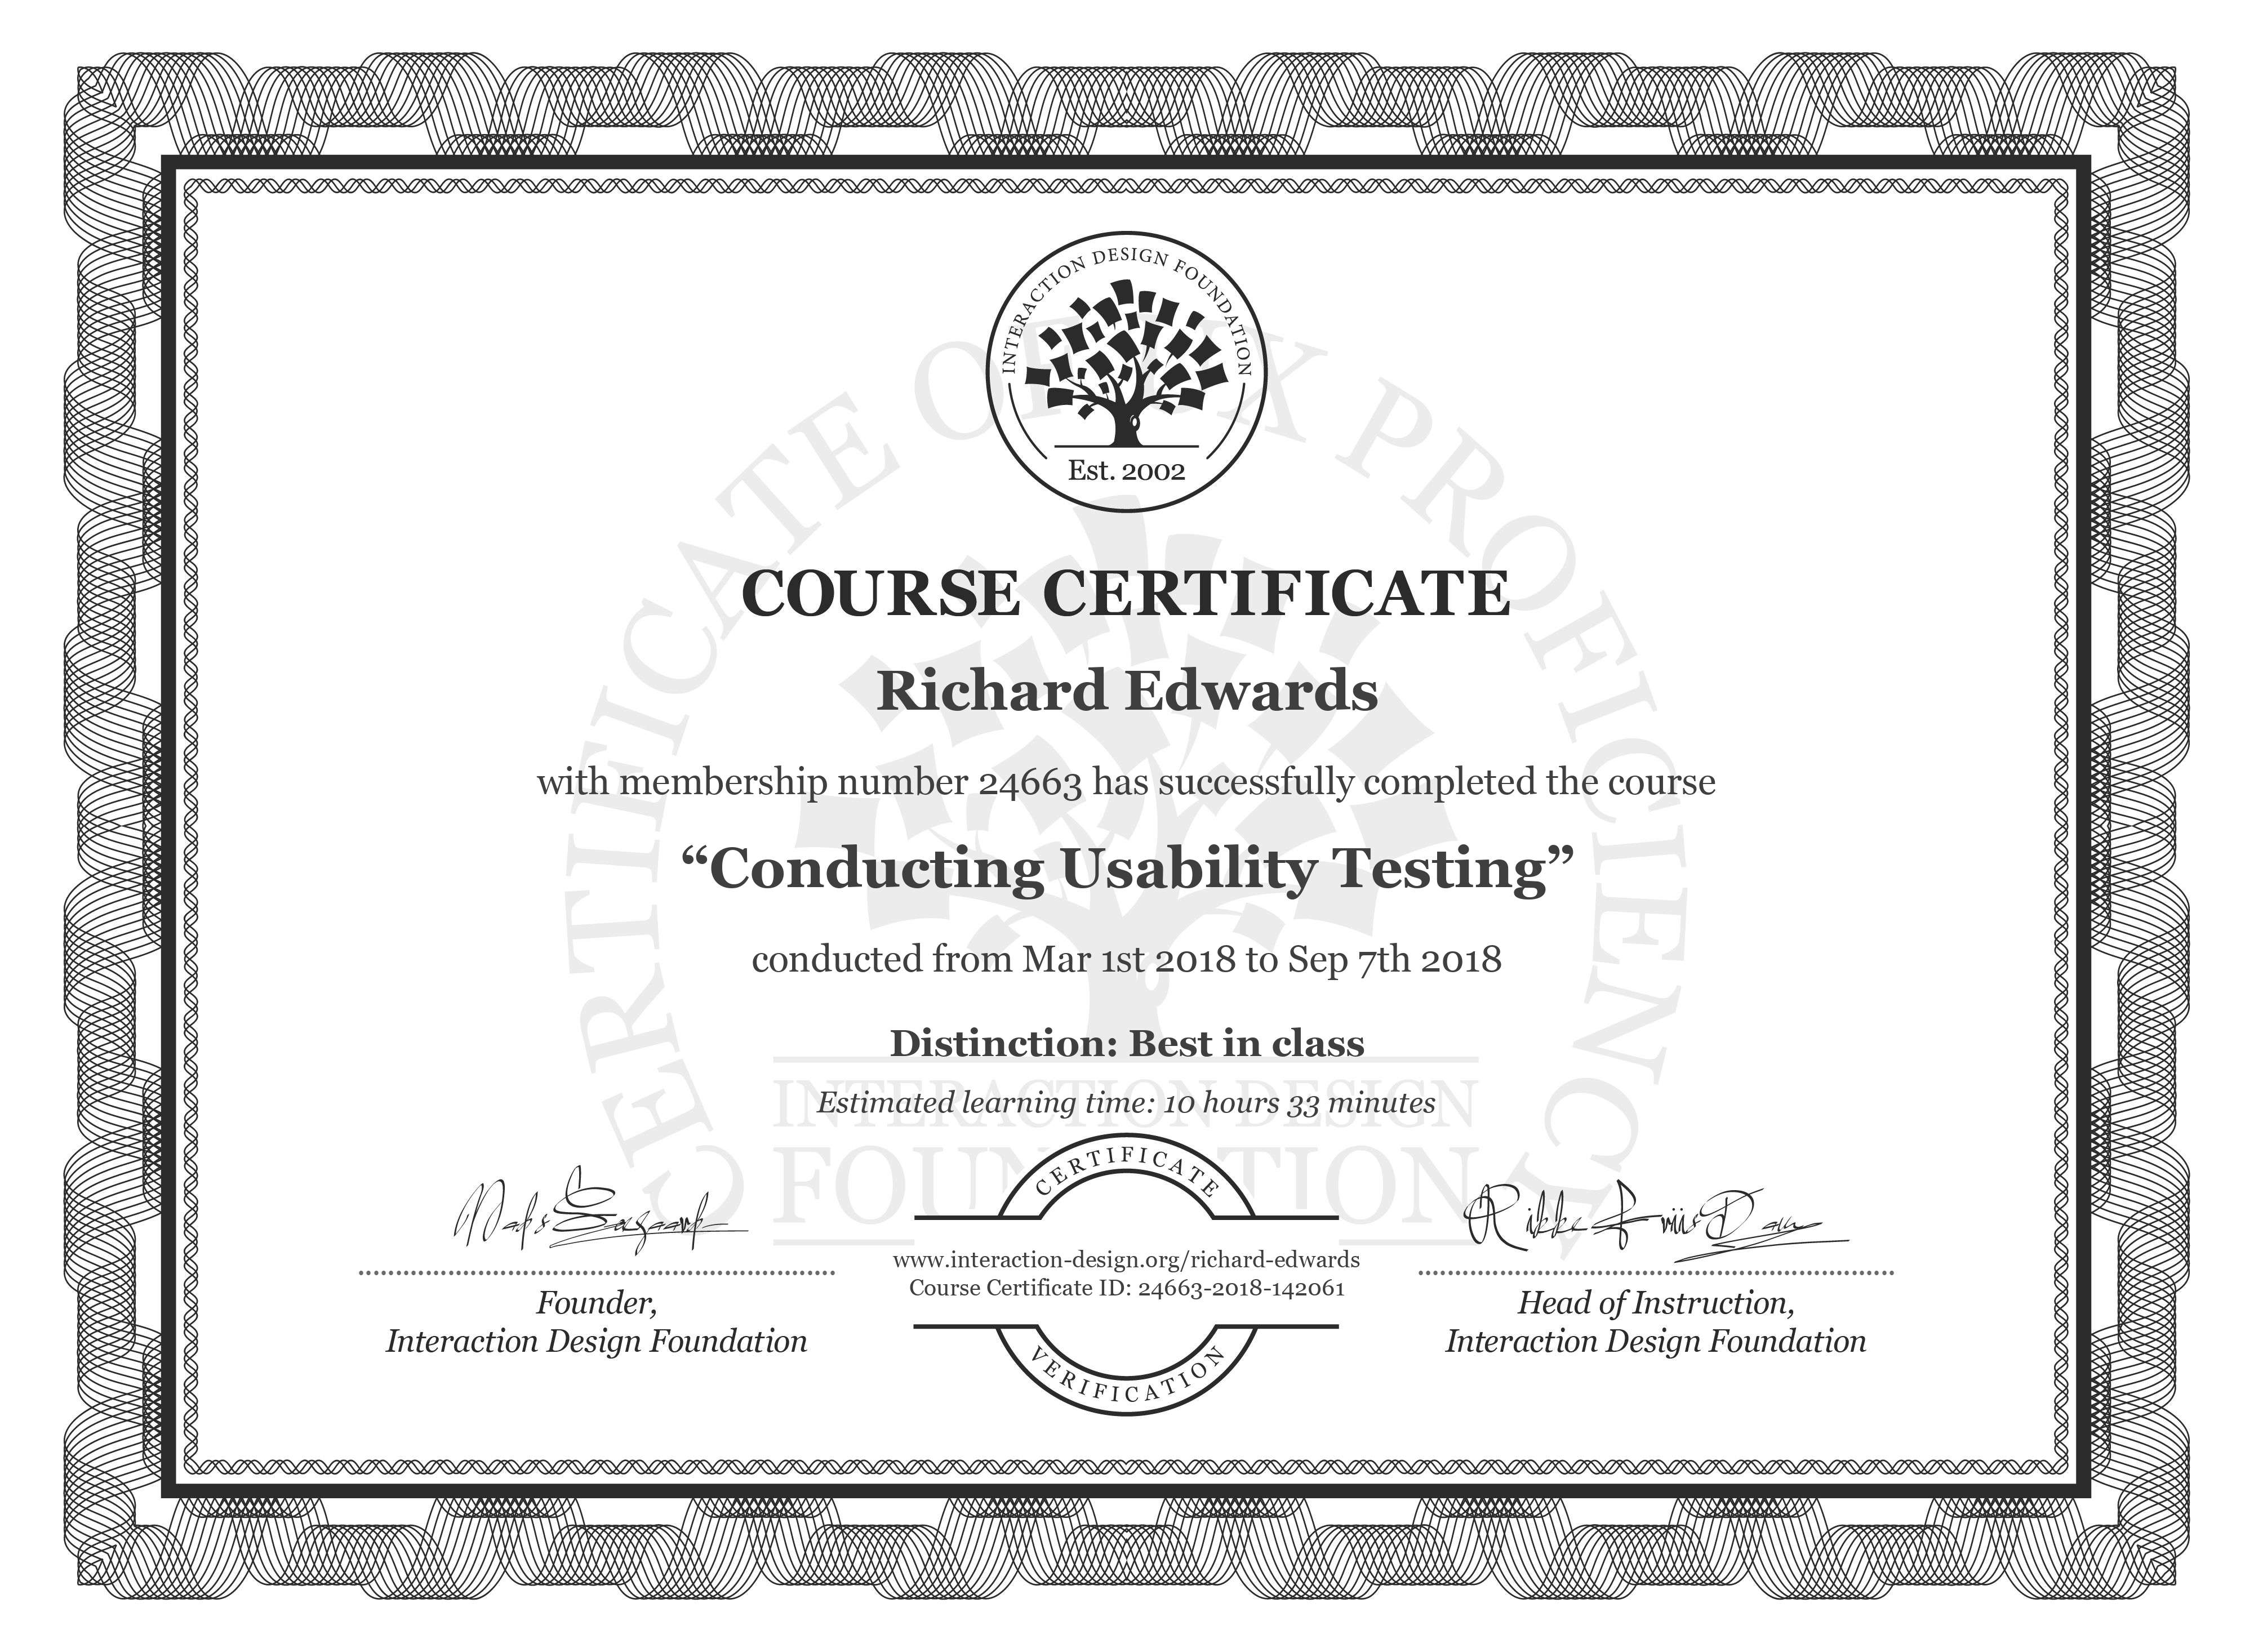 Richard Edwards's Course Certificate: Conducting Usability Testing